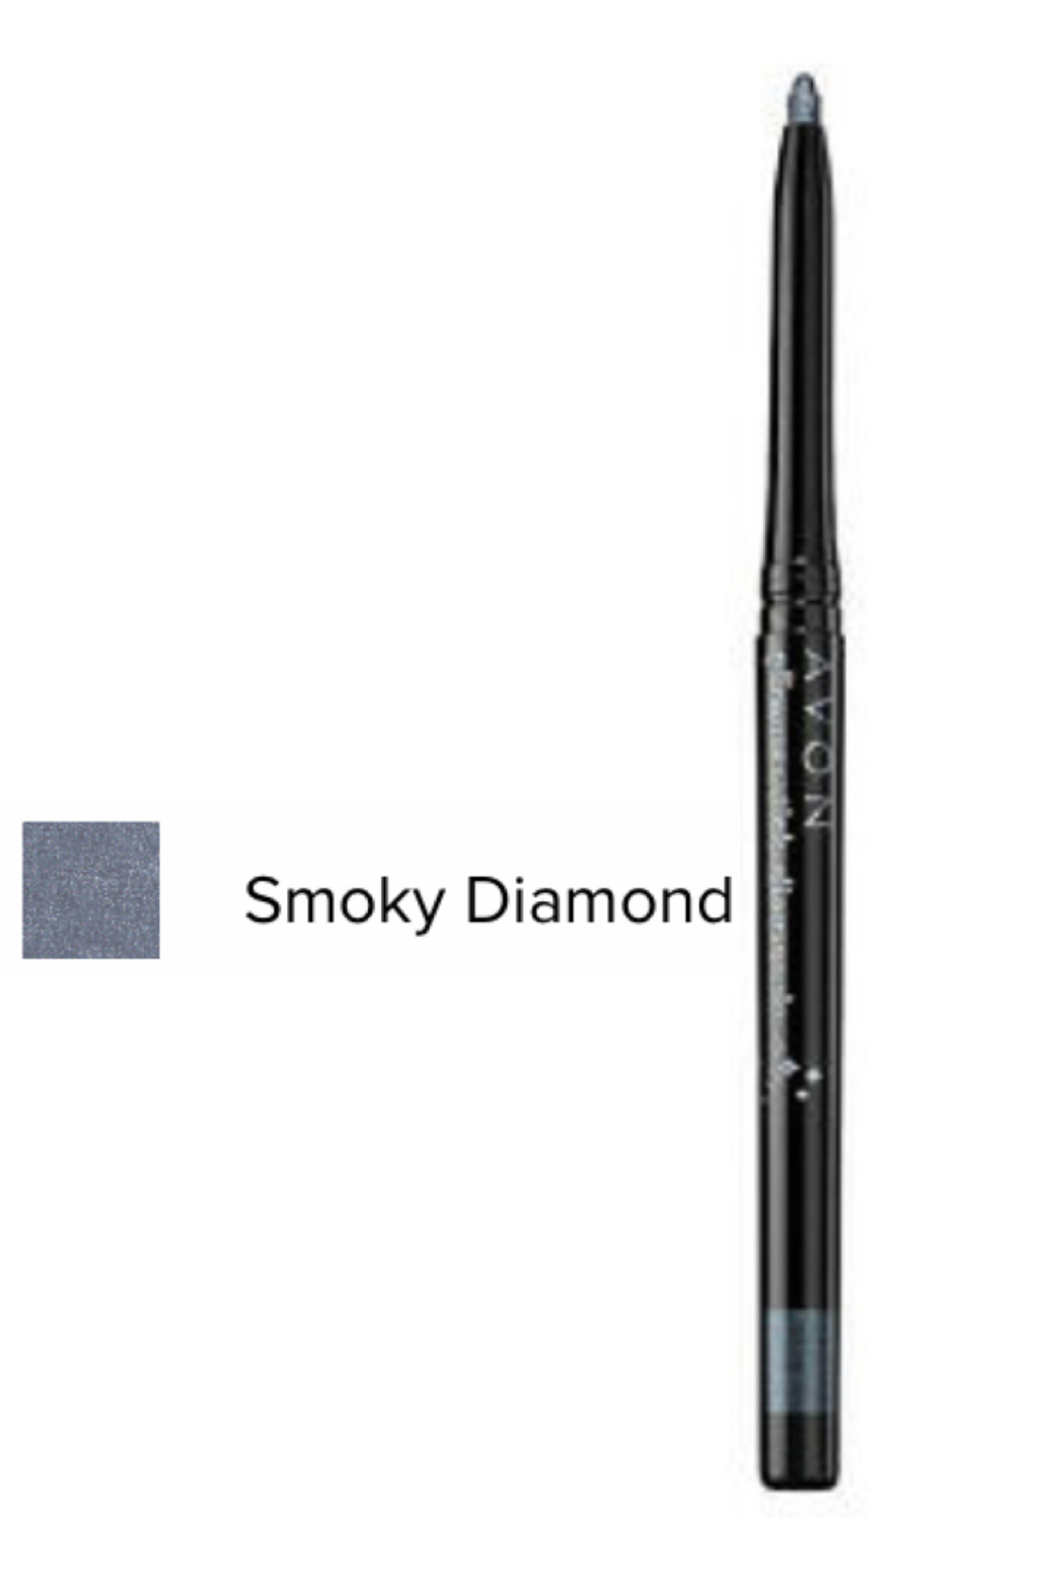 Smoky Diamond Glimmerstick Diamonds